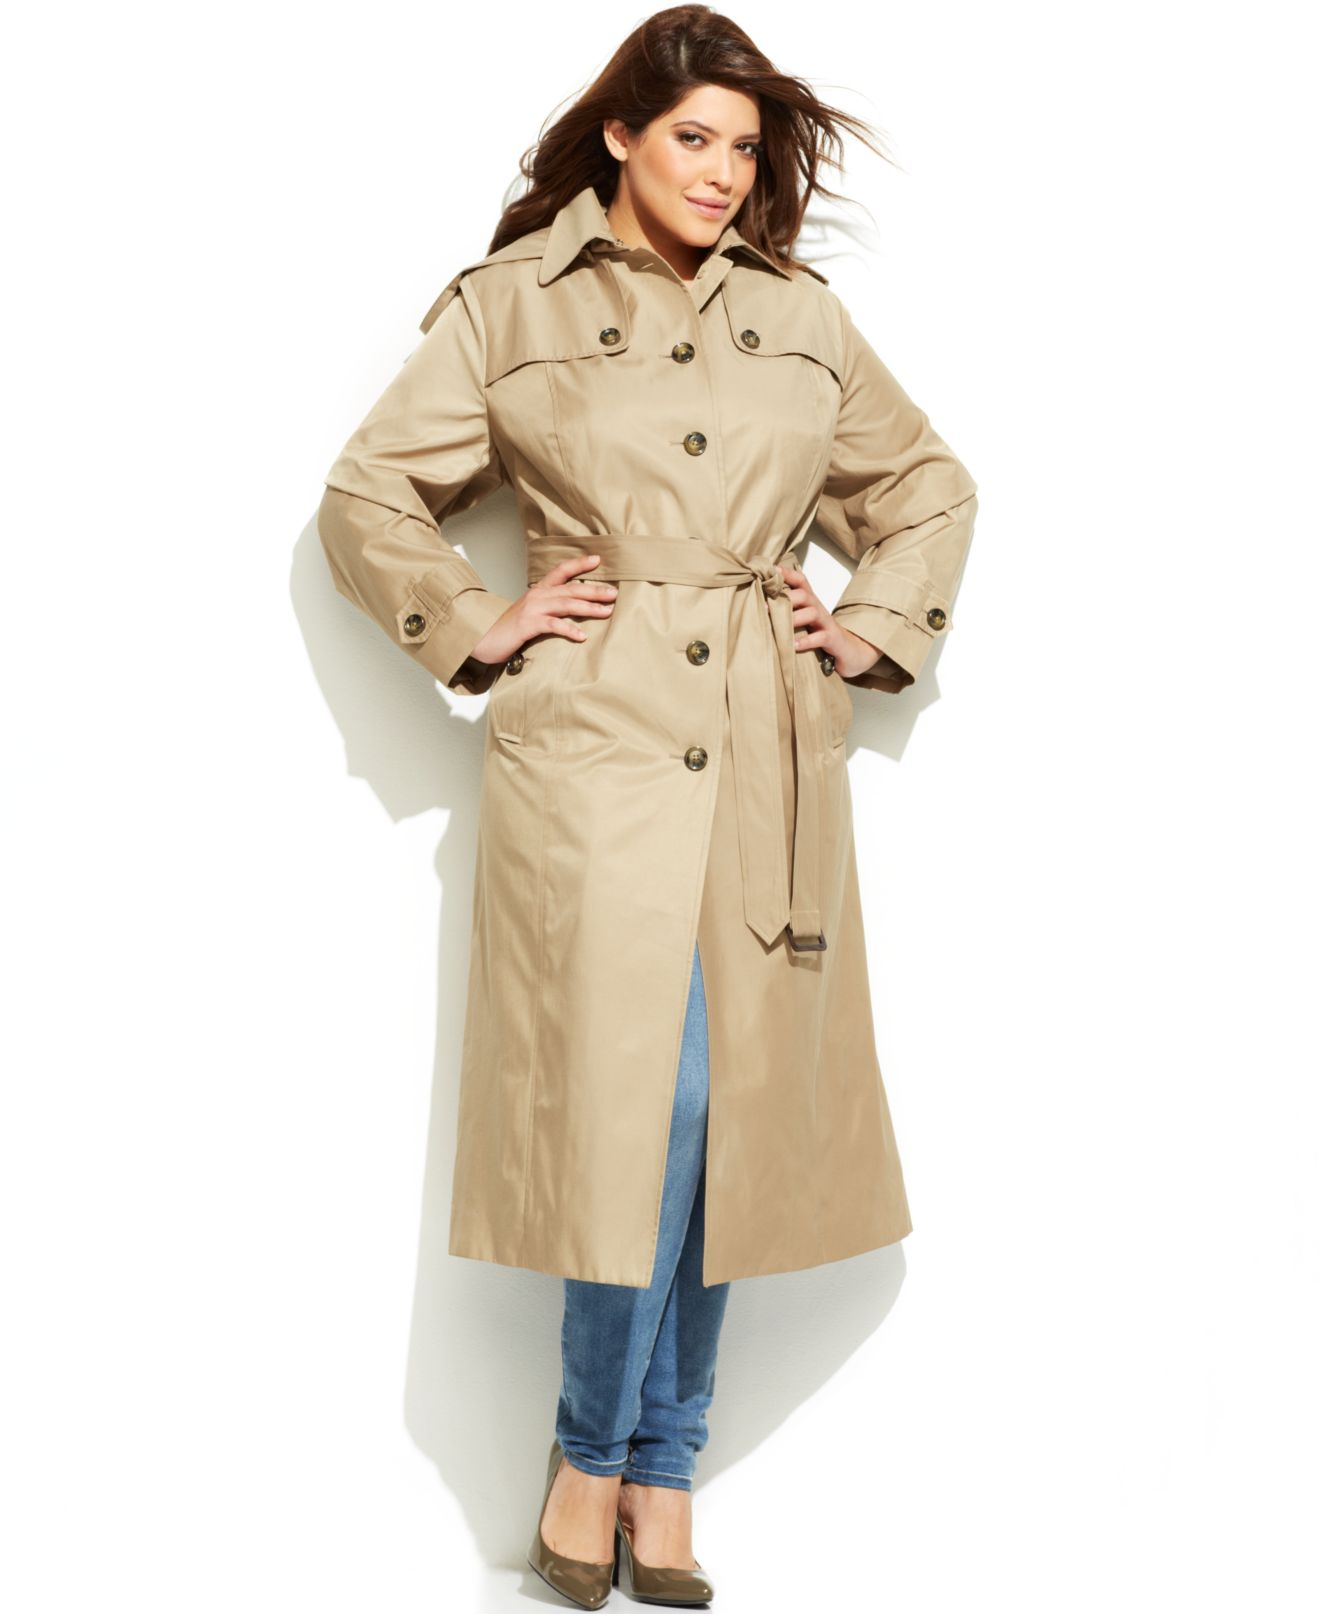 trench coat plus size women s - tradingbasis